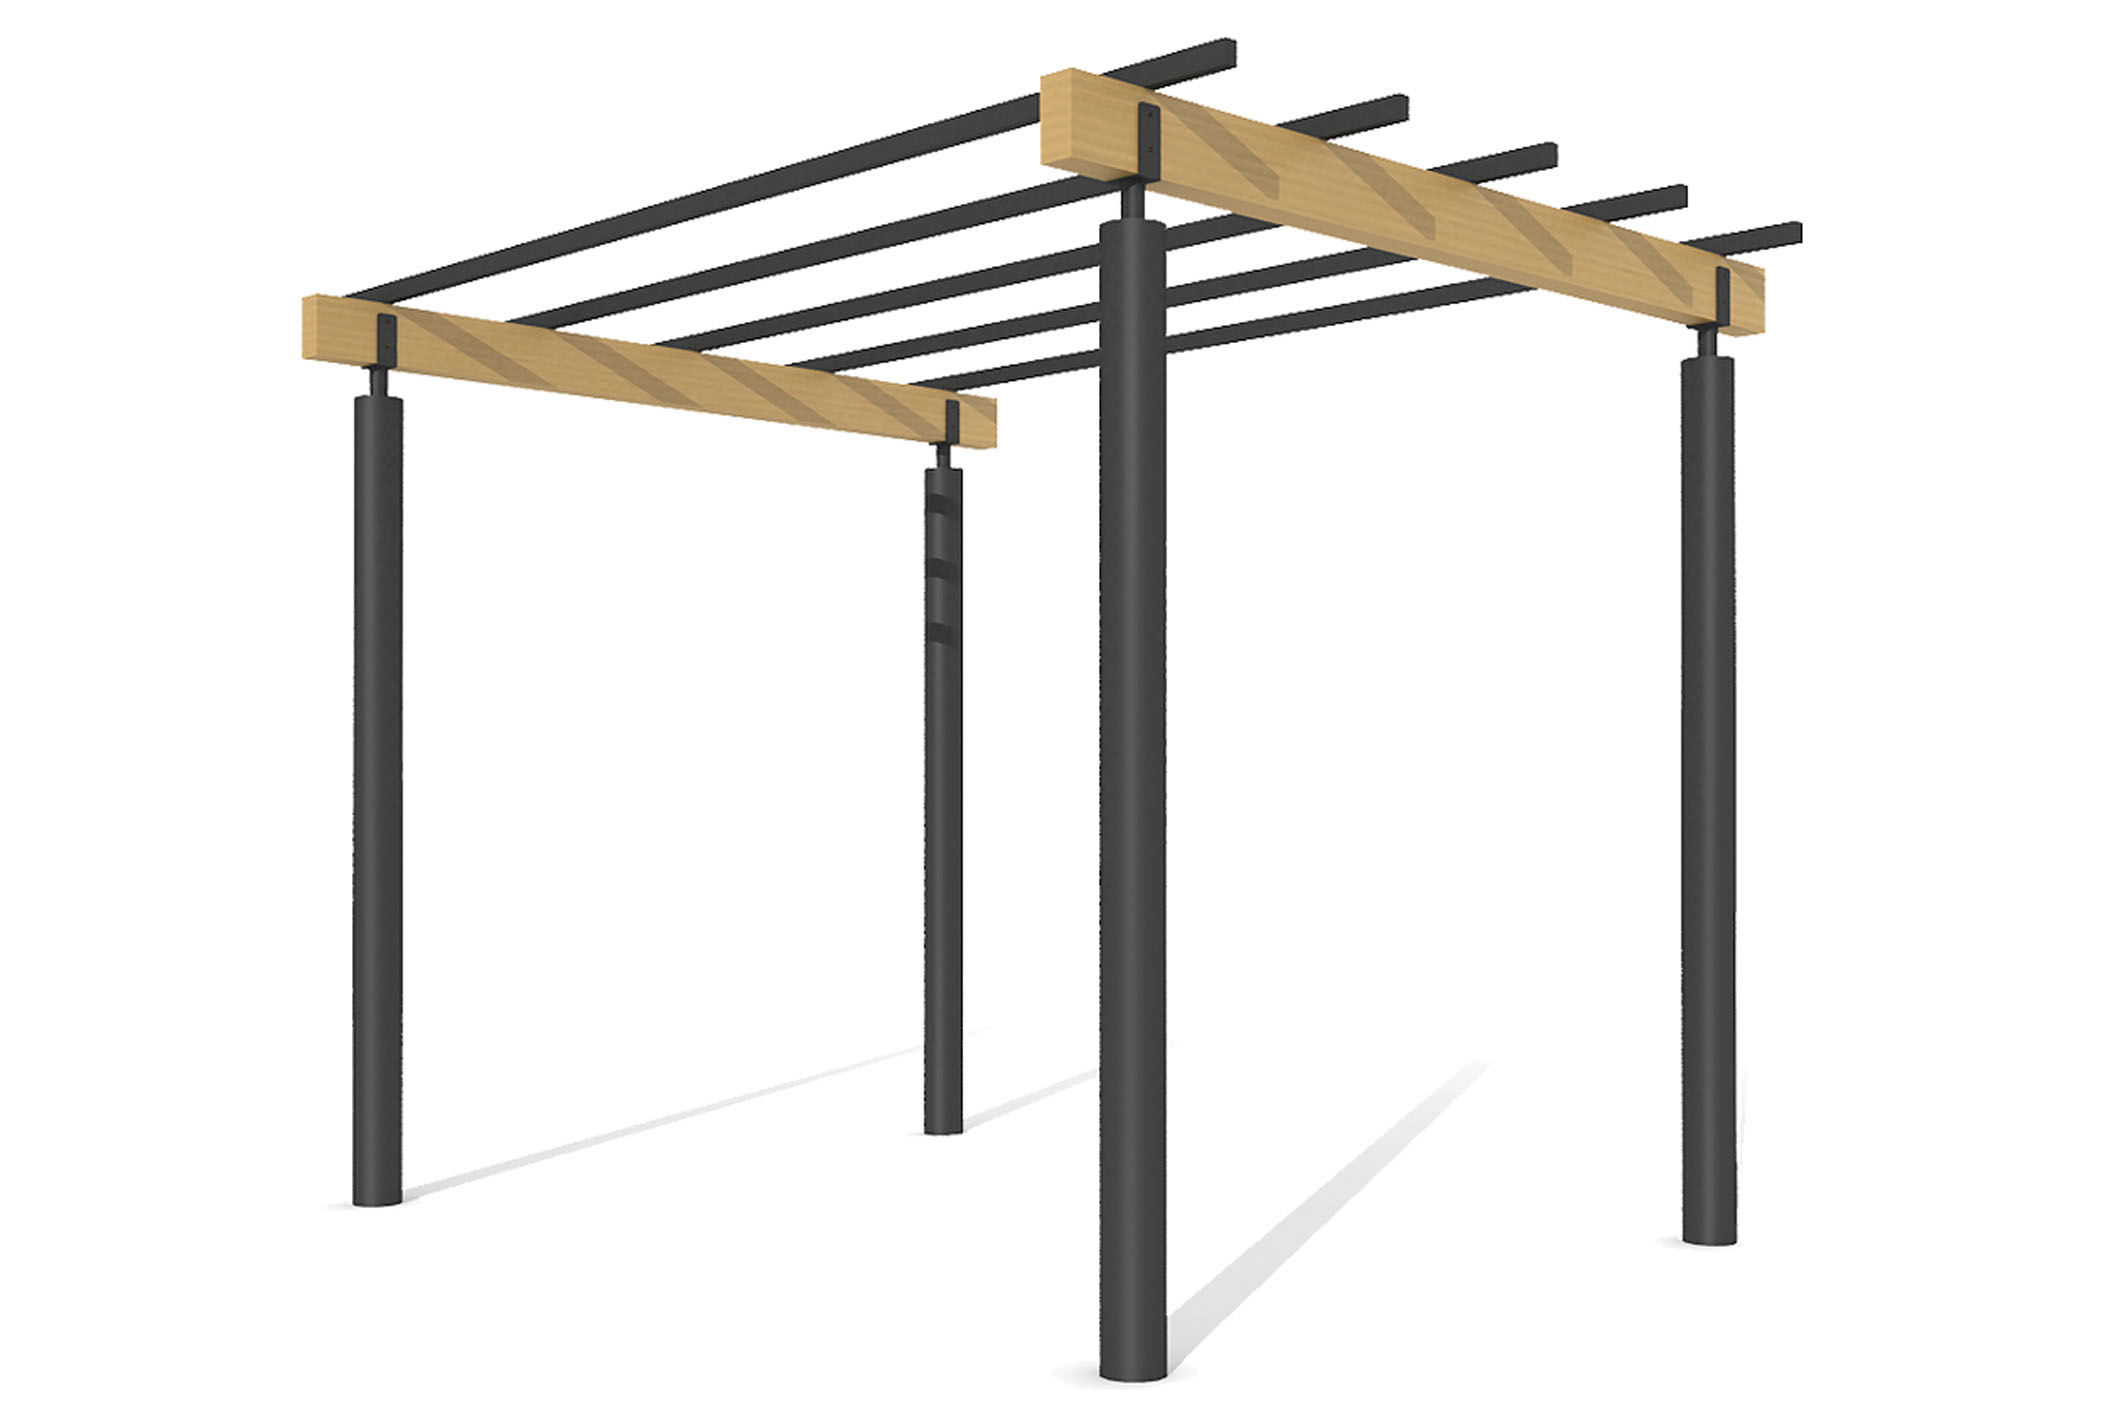 Pergola of wood and steel for outdoors